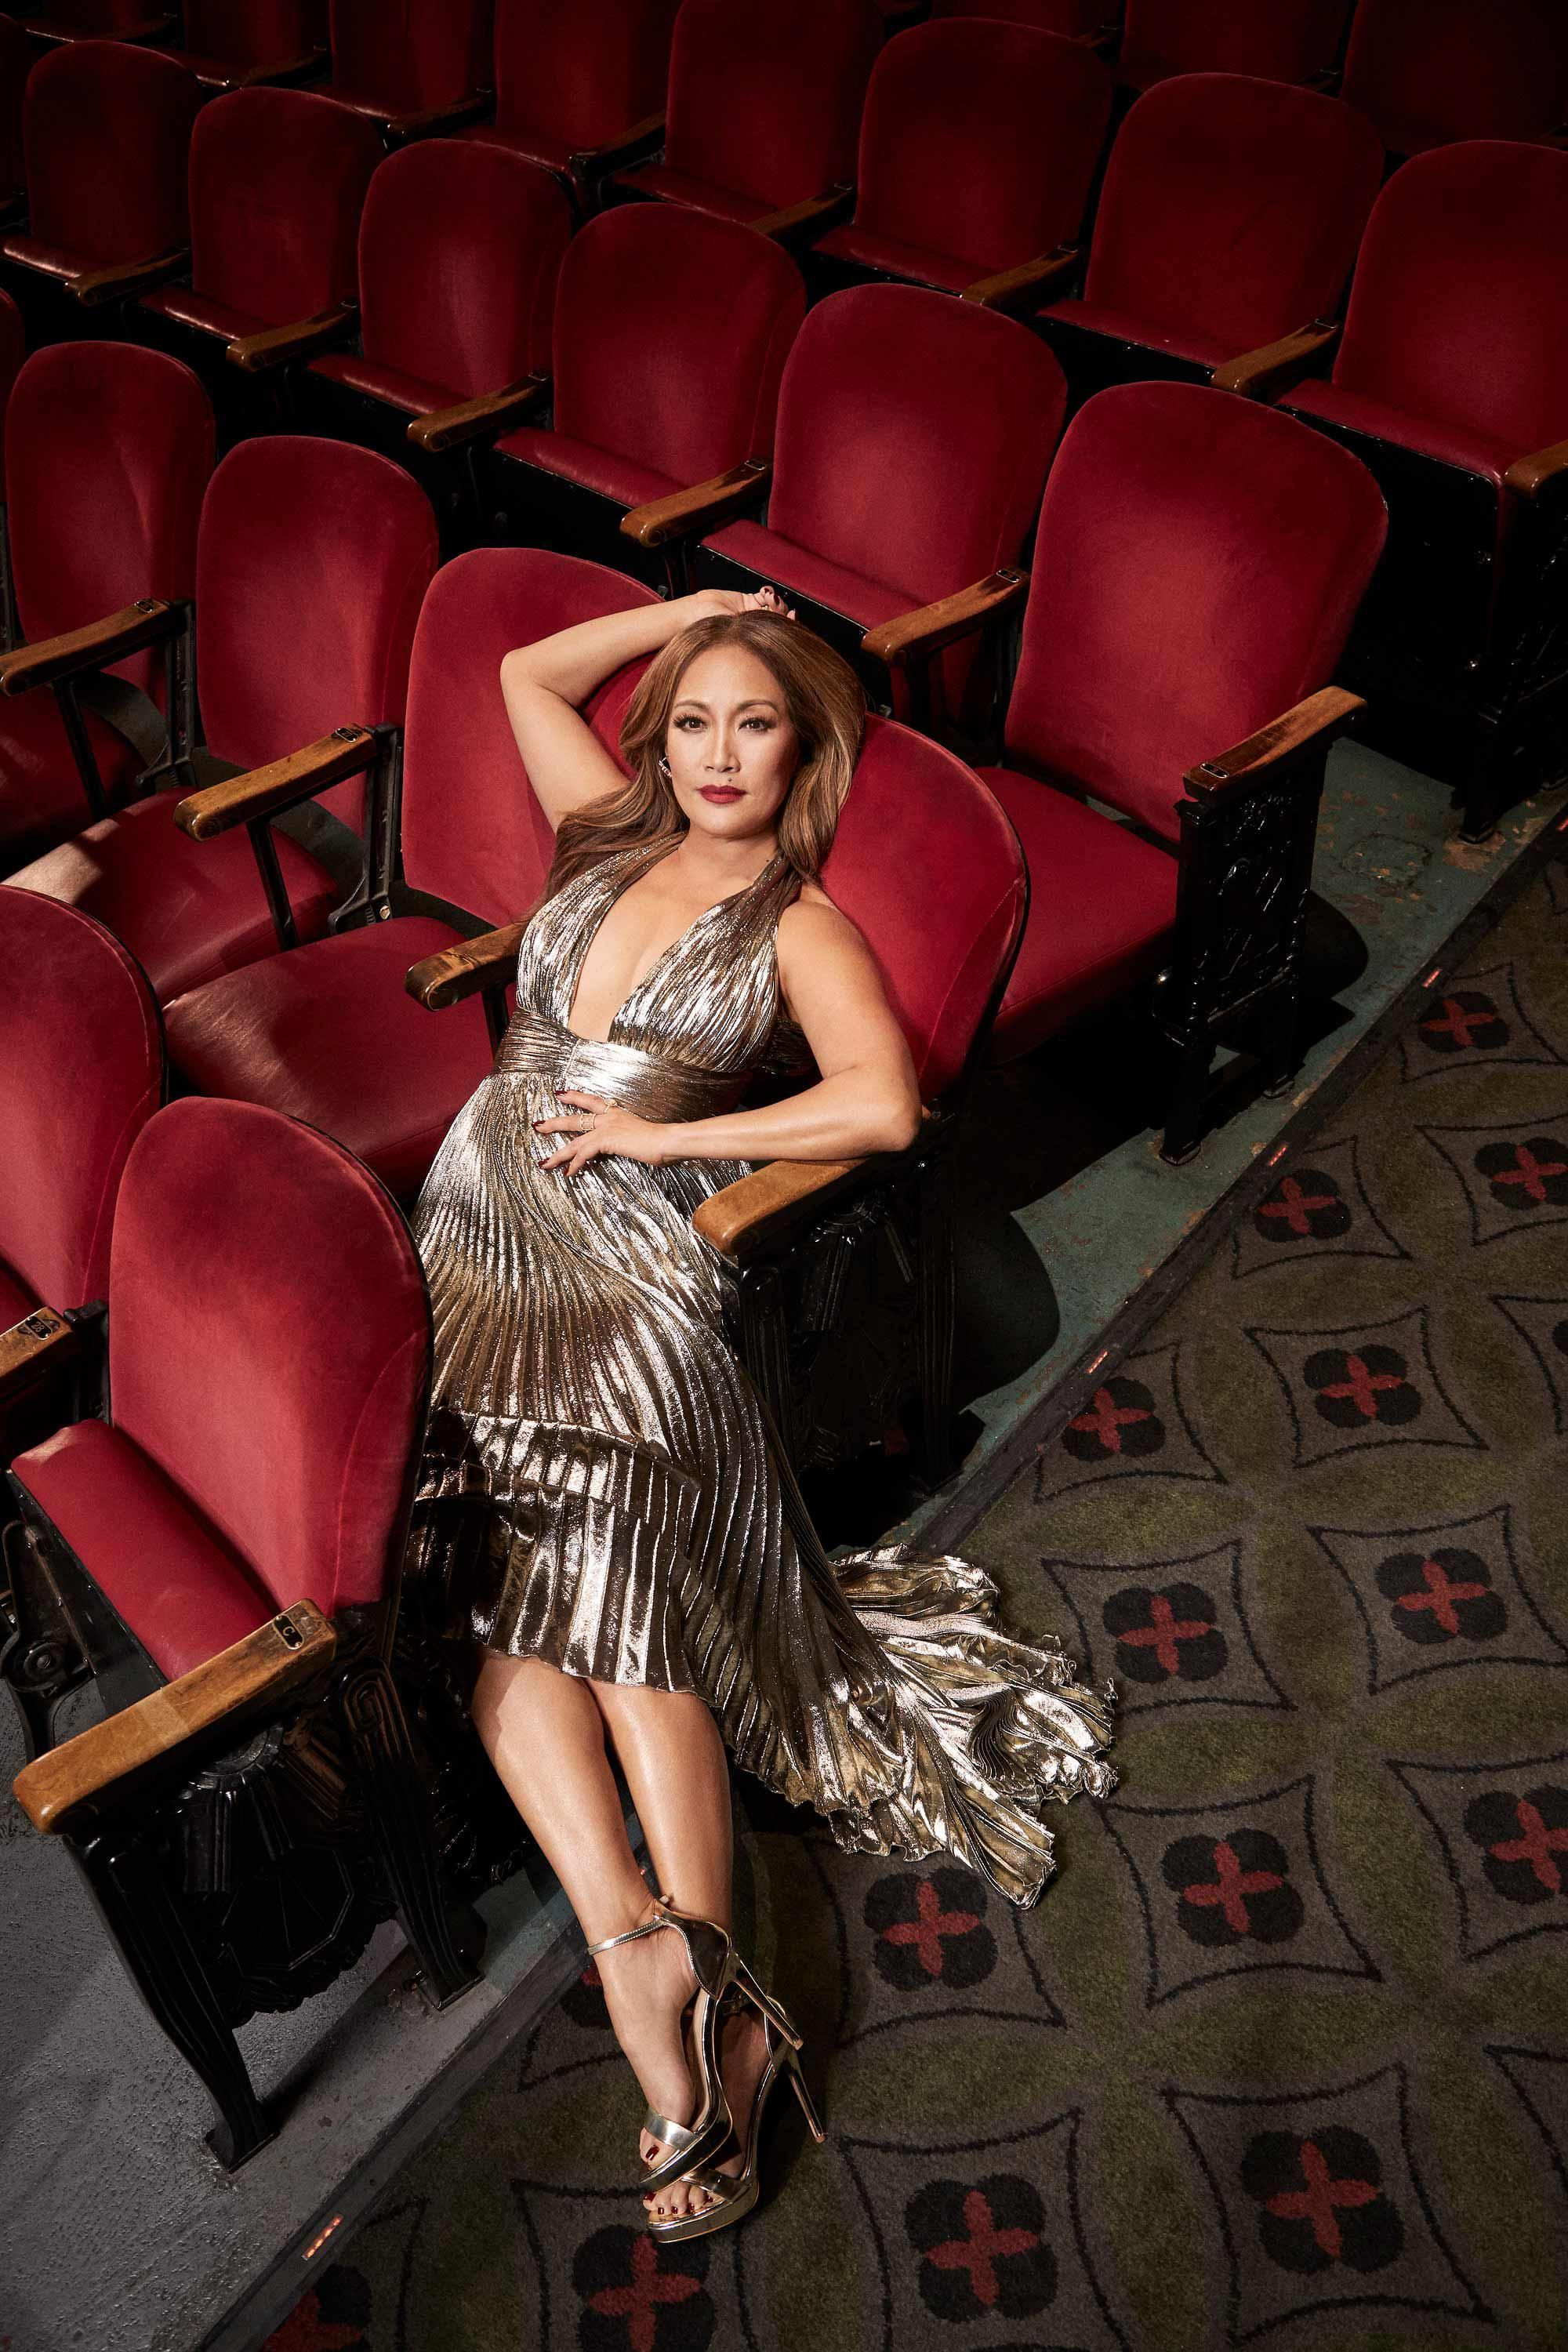 \u200bCarrie Ann Inaba models a metallic gown and matching shoes